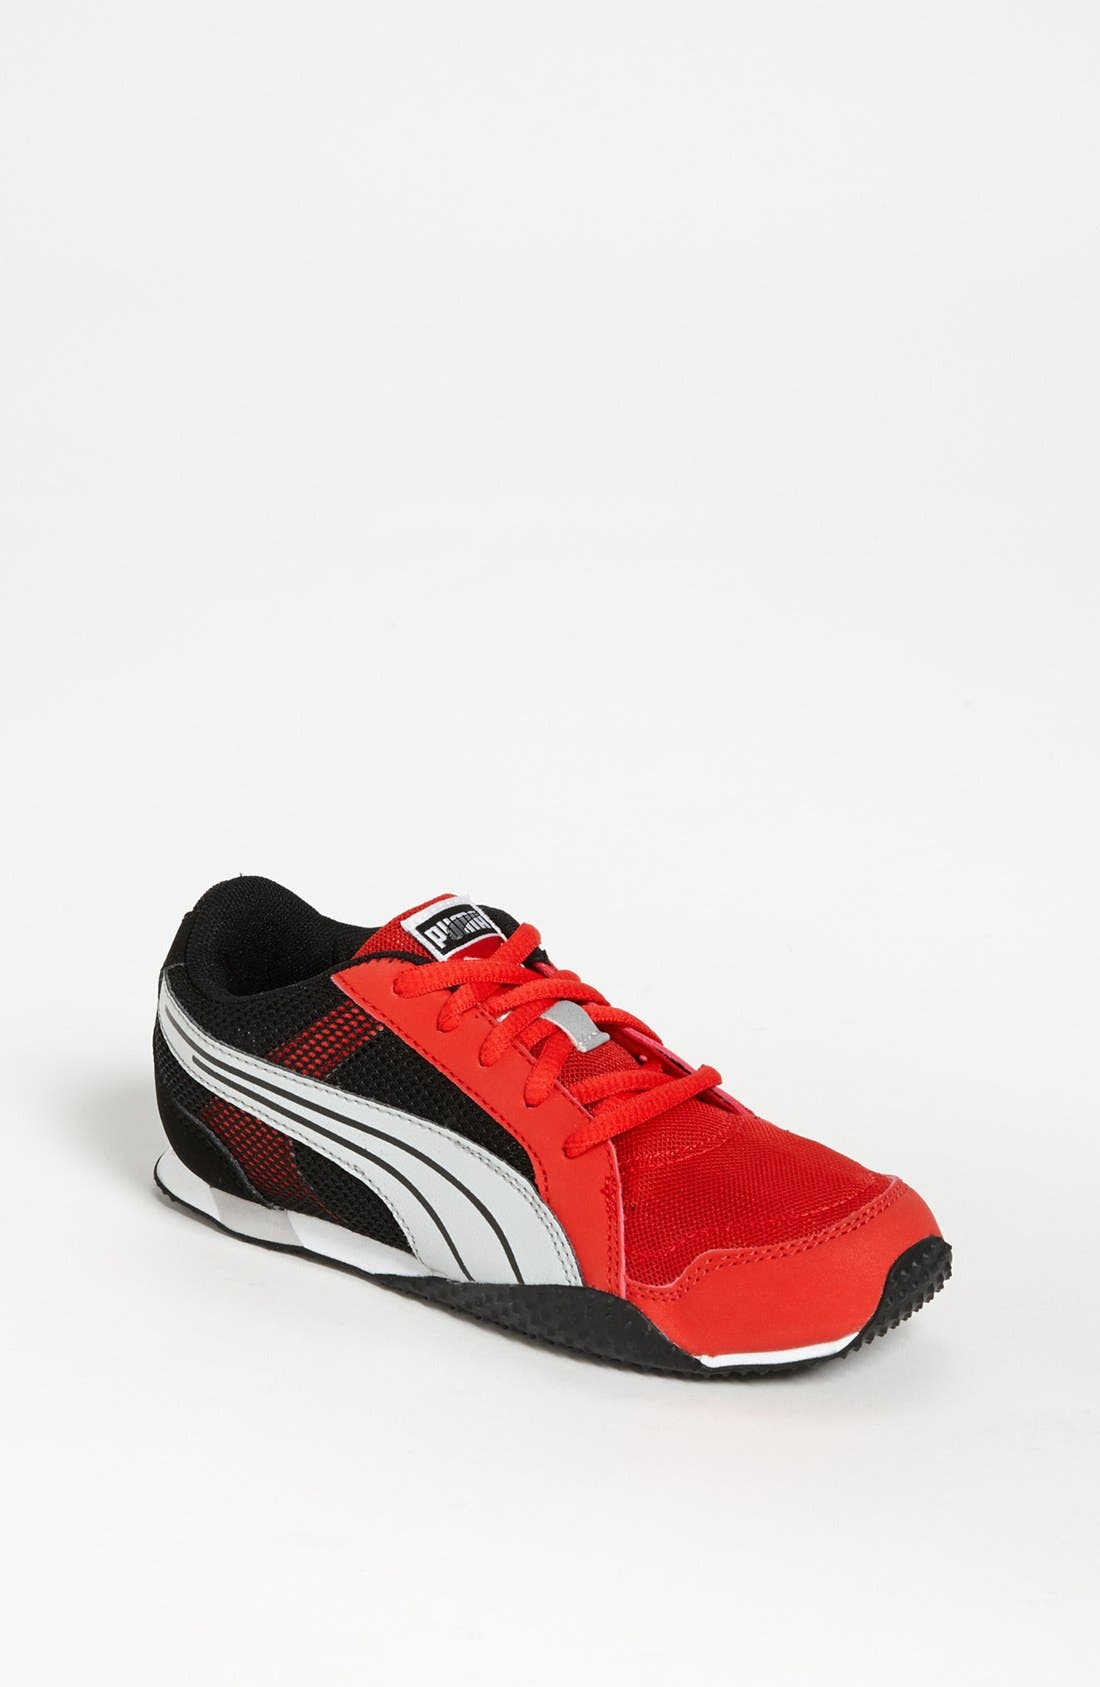 Alternate Image 1 Selected - PUMA 'H-Mesh' Sneaker (Toddler, Little Kid & Big Kid)